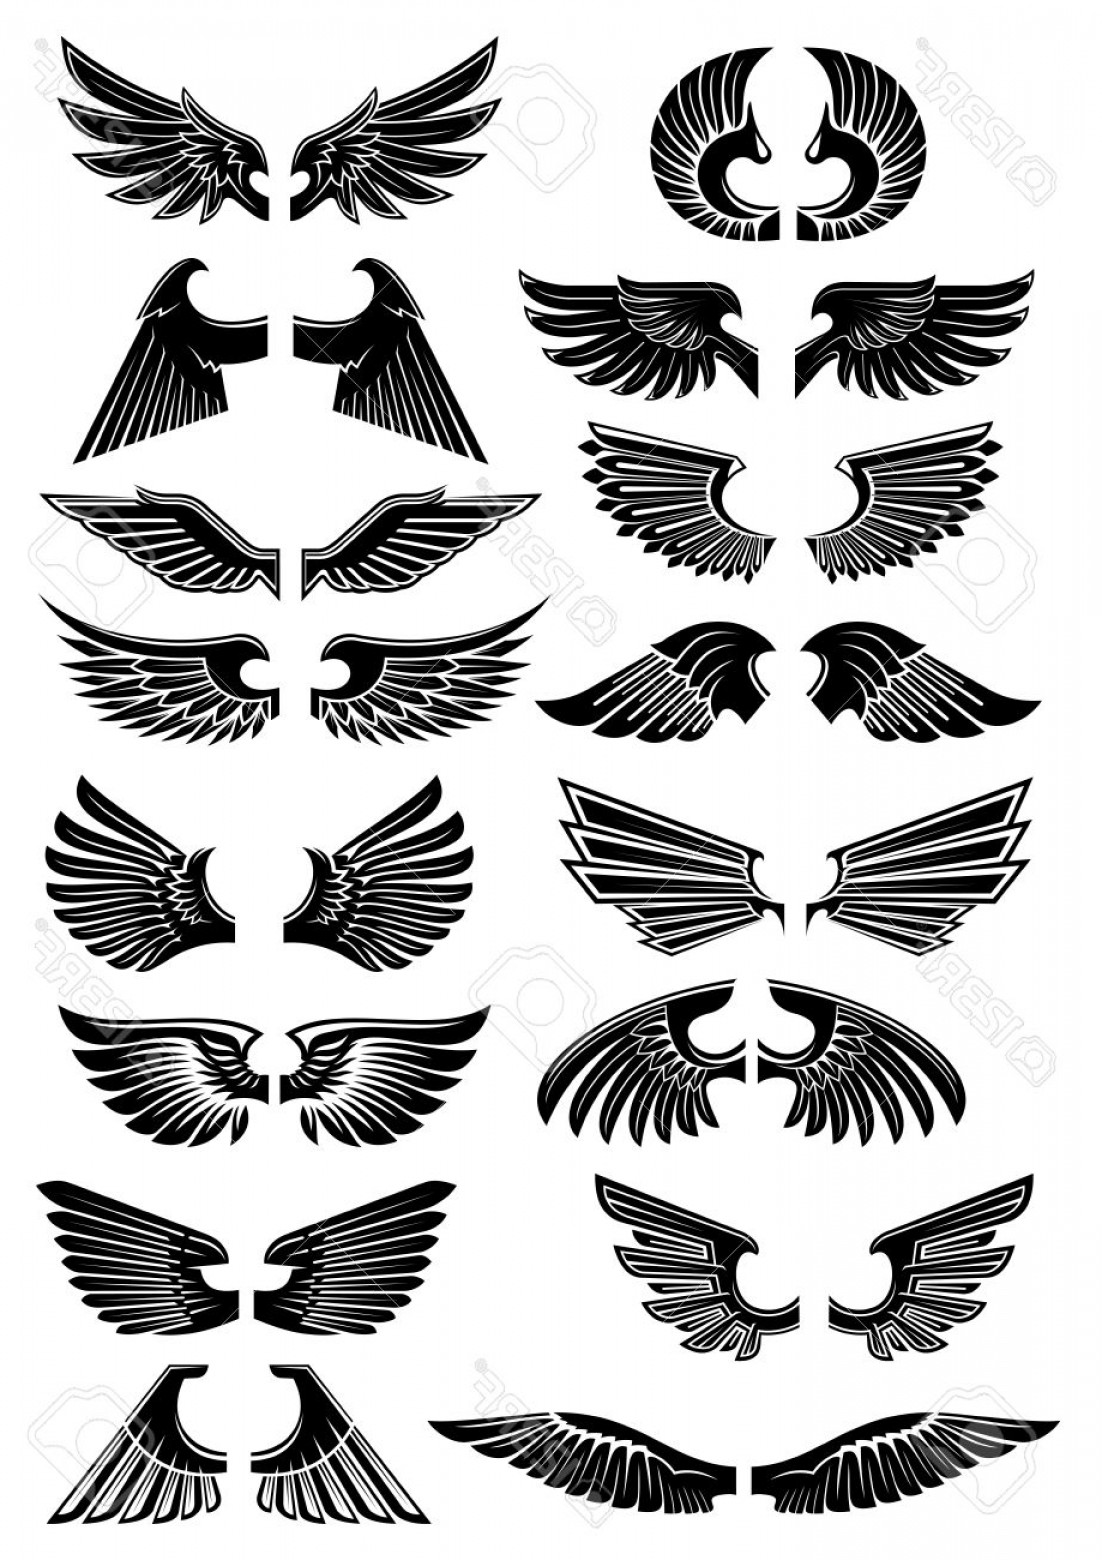 Angel Wings Tattoo Tribal Vector: Photostock Vector Wings Heraldic Icons Birds And Angel Wings Silhouette For Tattoo Heraldry Or Tribal Design Vector Go